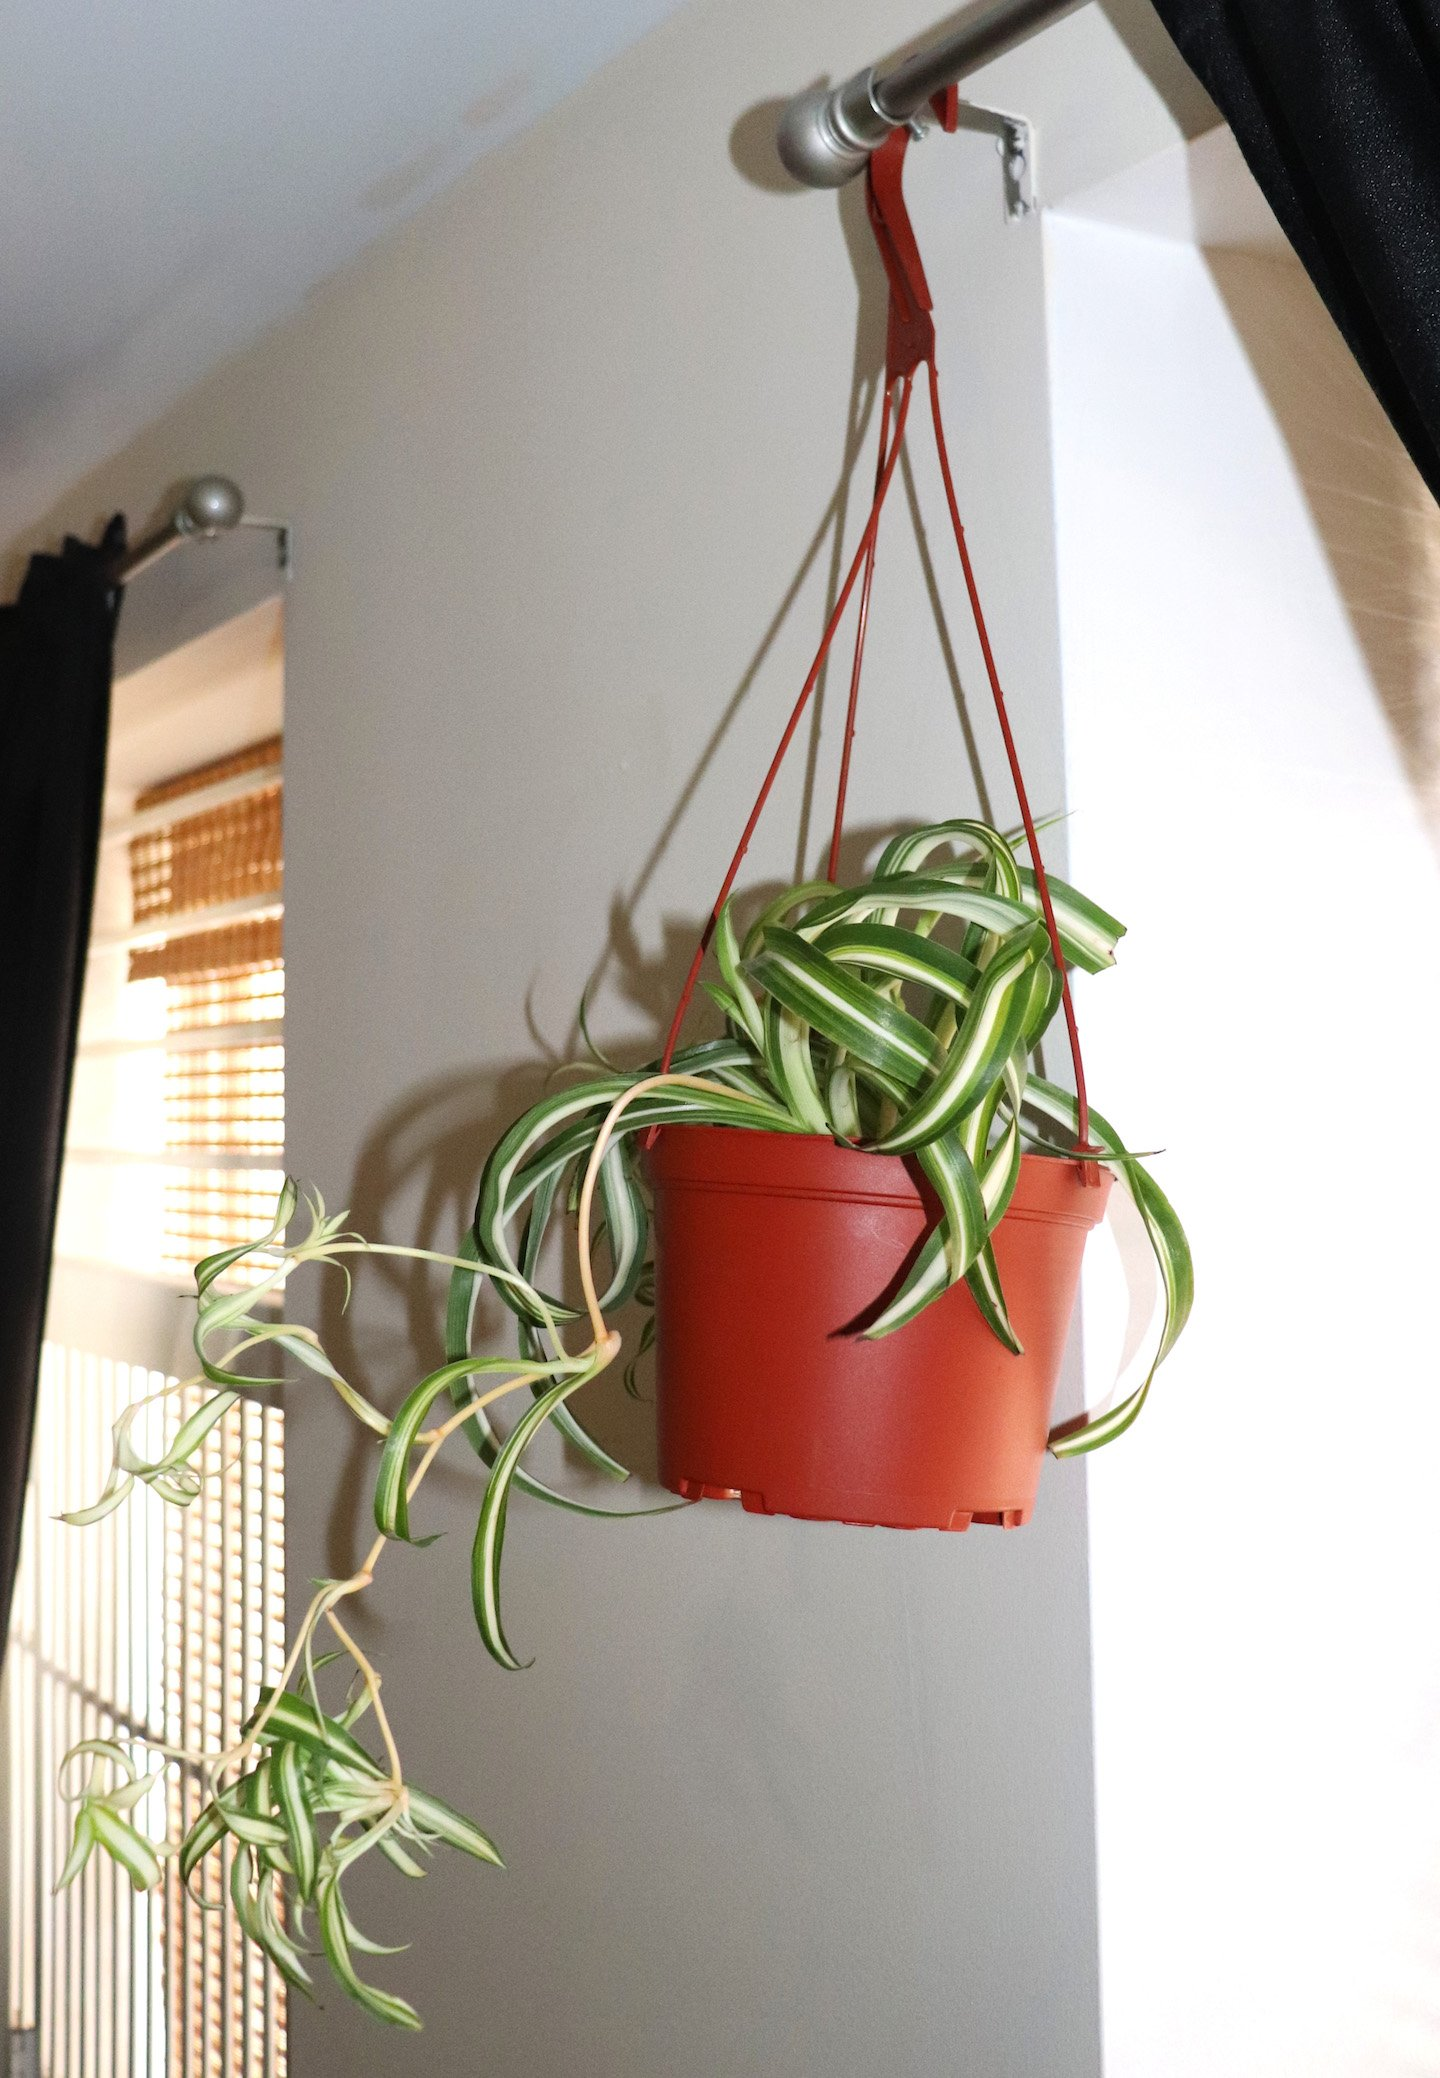 Curly Bonnie Spider Plant in hanging basket